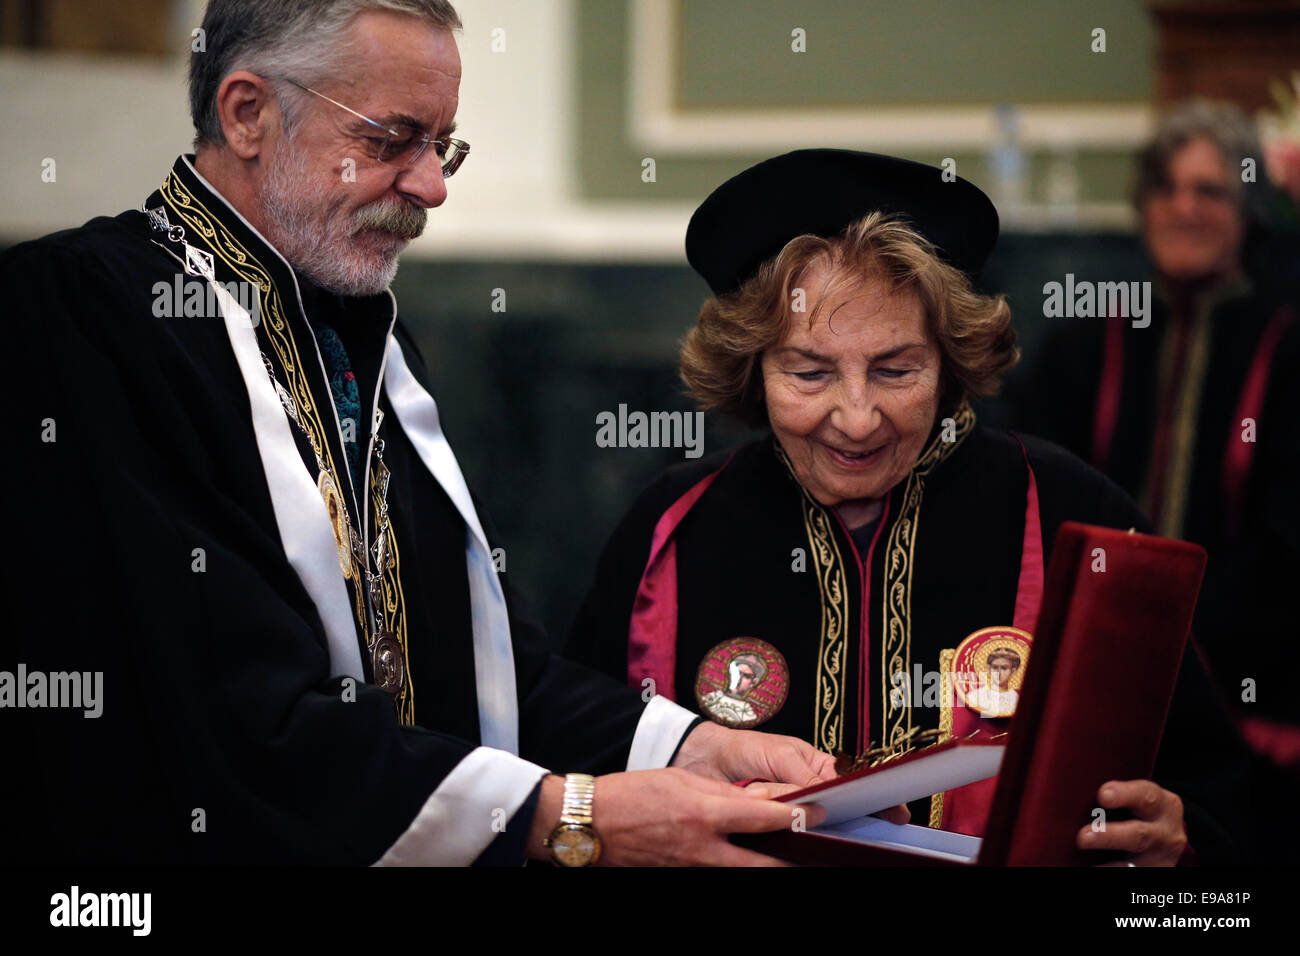 Thessaloniki, Greece. 23rd Oct, 2014. Award Ceremony Honorary Doctorate in the Department of Early Childhood Education - Stock Image